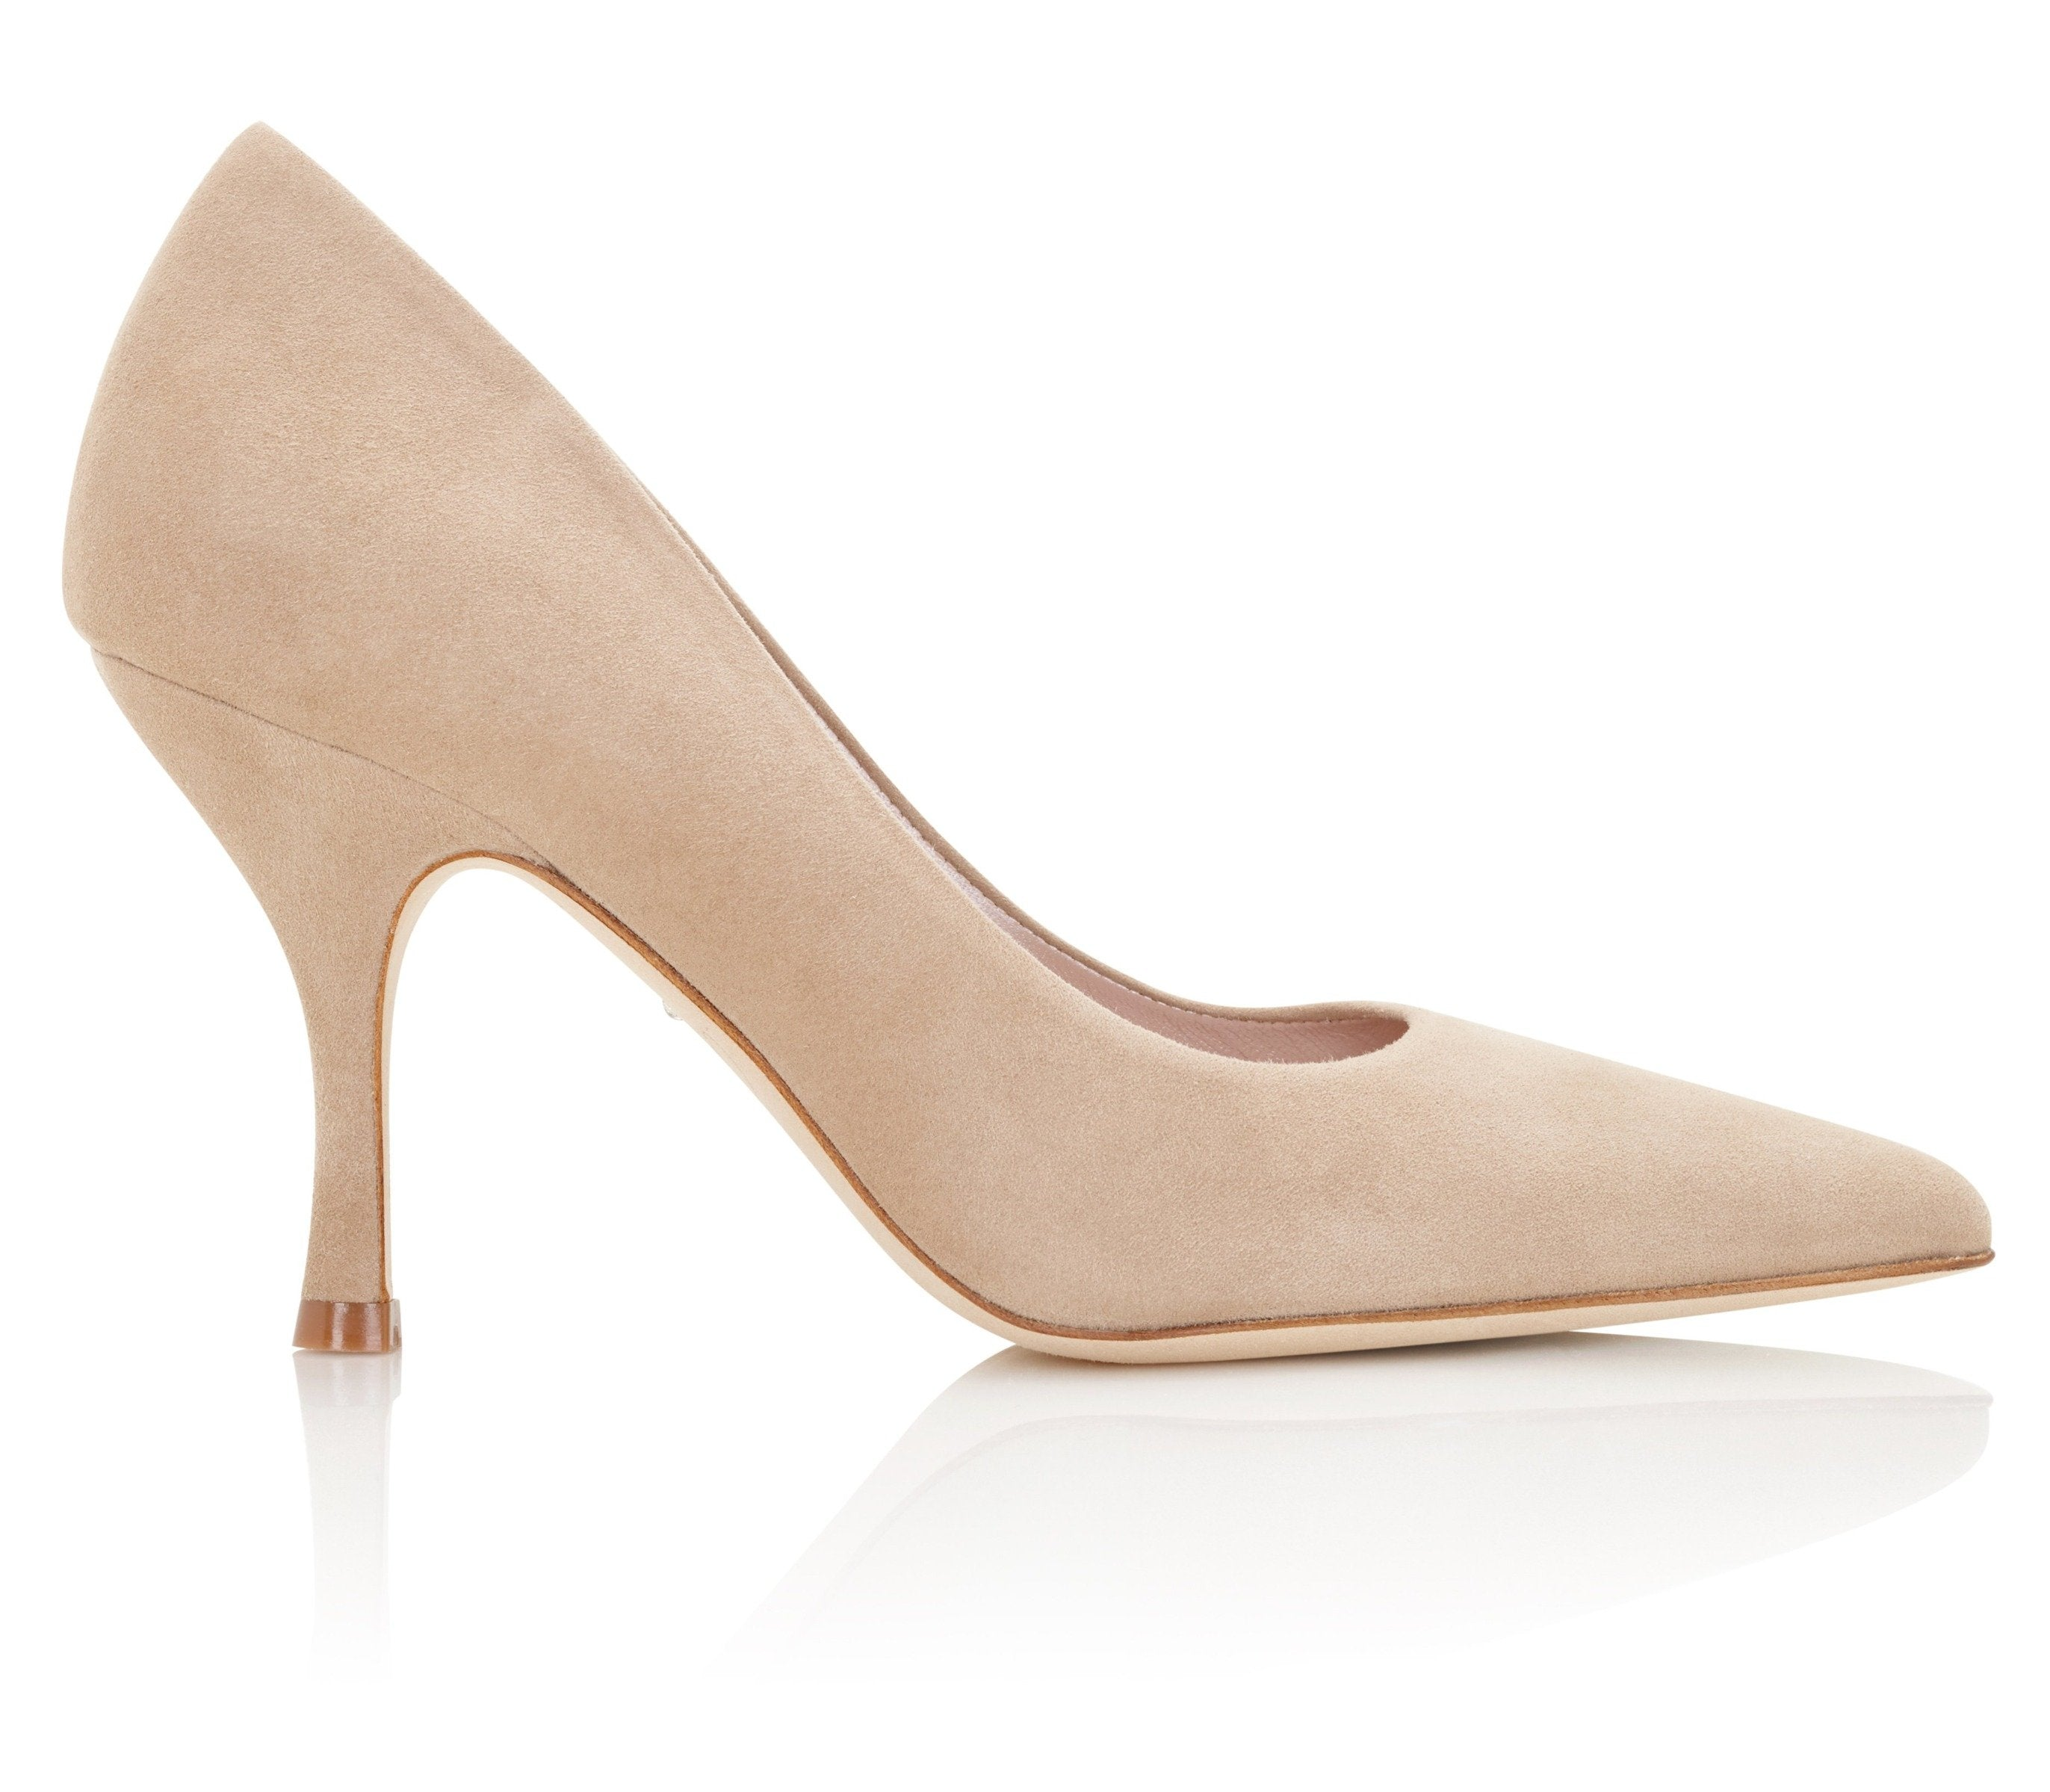 Olivia Biscuit Suede Mid Heel Court Shoes By Emmy London